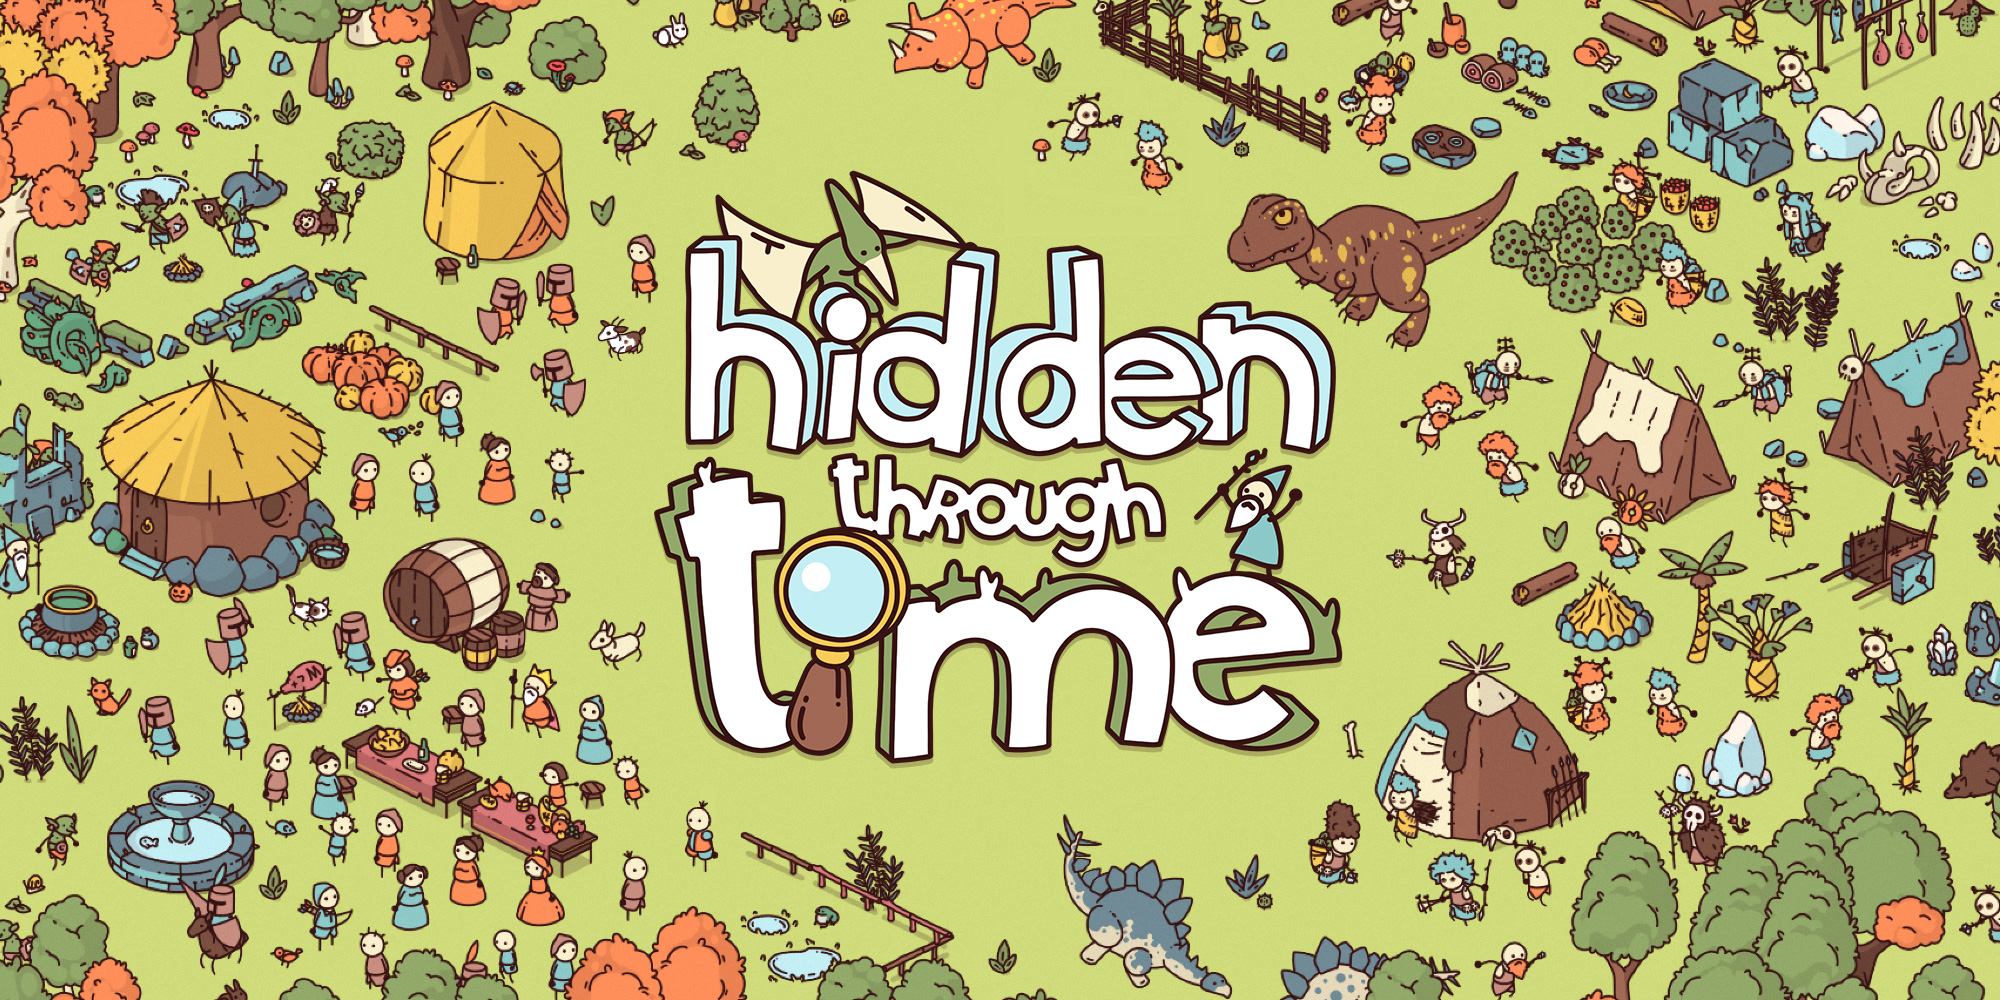 Deal Alert: Hidden Through Time, One Deck Dungeon, Cytus II and more Google Play Games on sale this week!